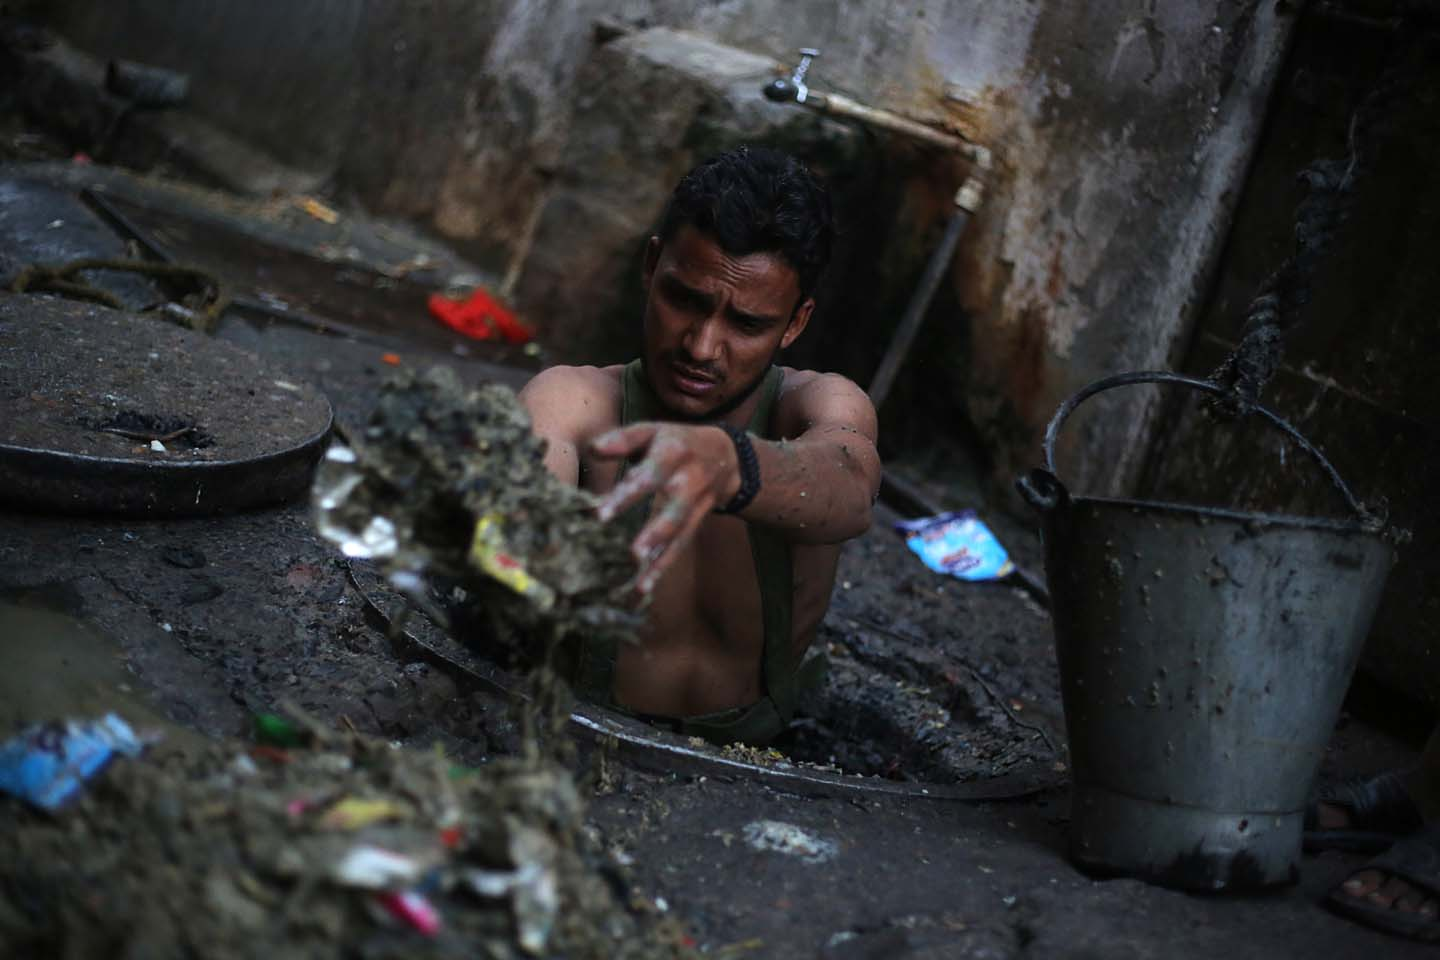 Manual scavenging: Not everyone's dream job